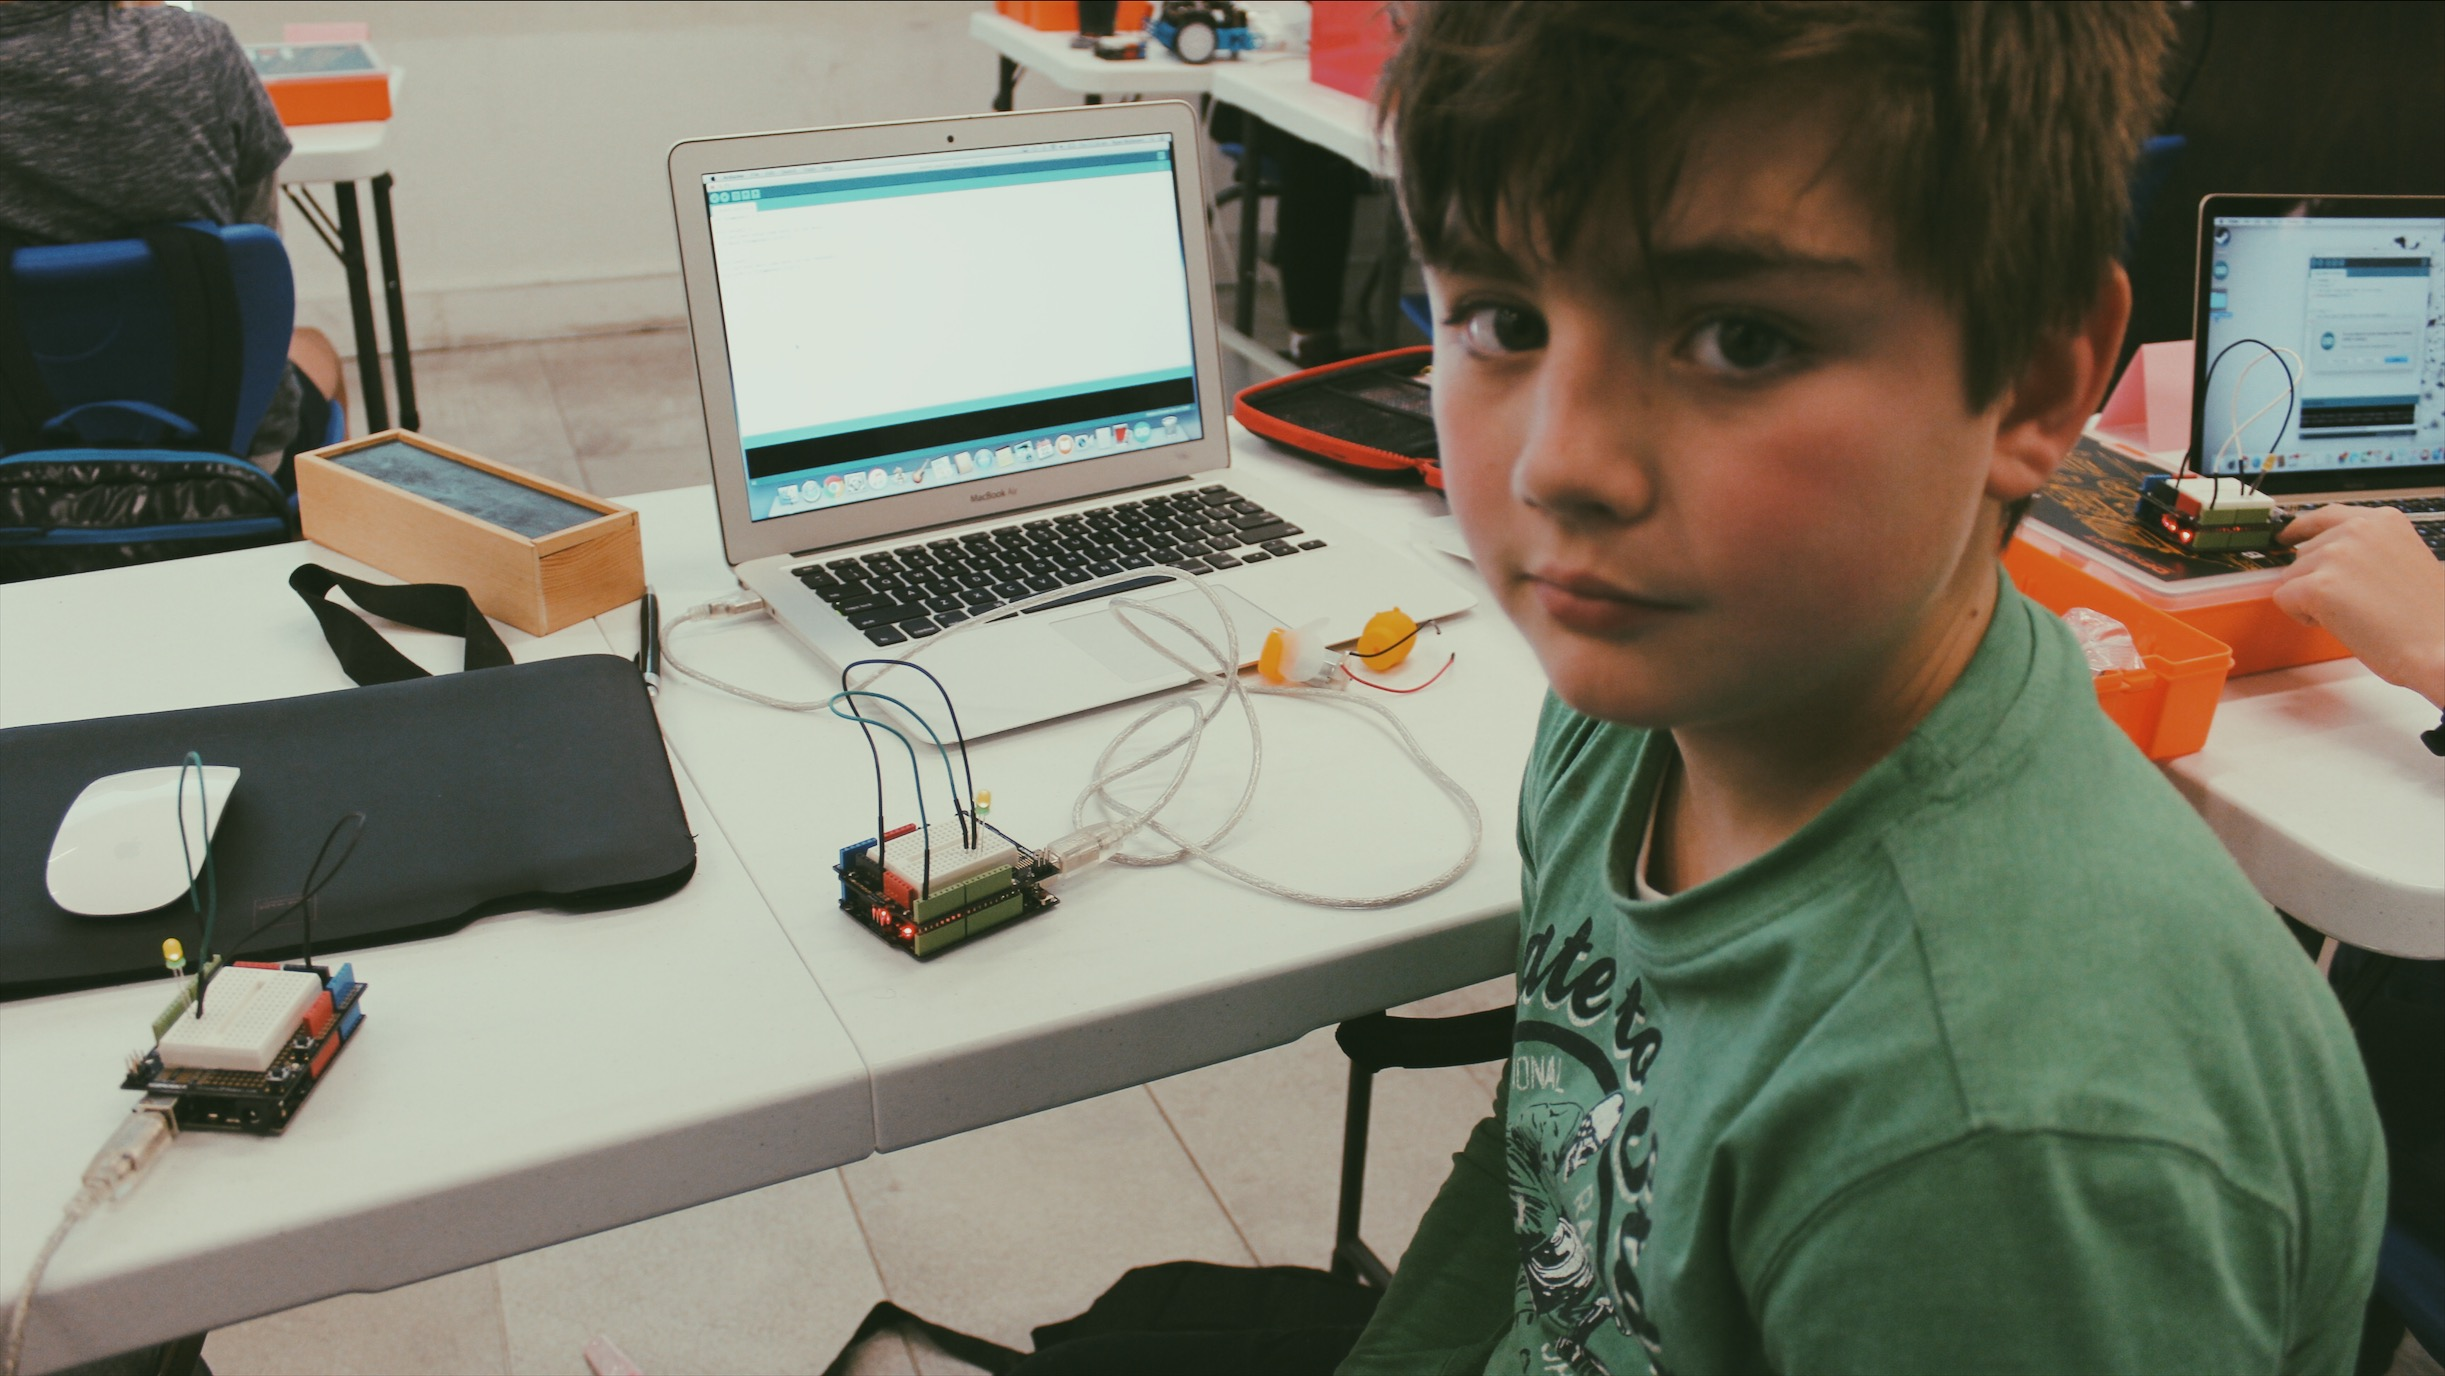 Lemonade Stand Kids Coding: a boy shows off his Arduino